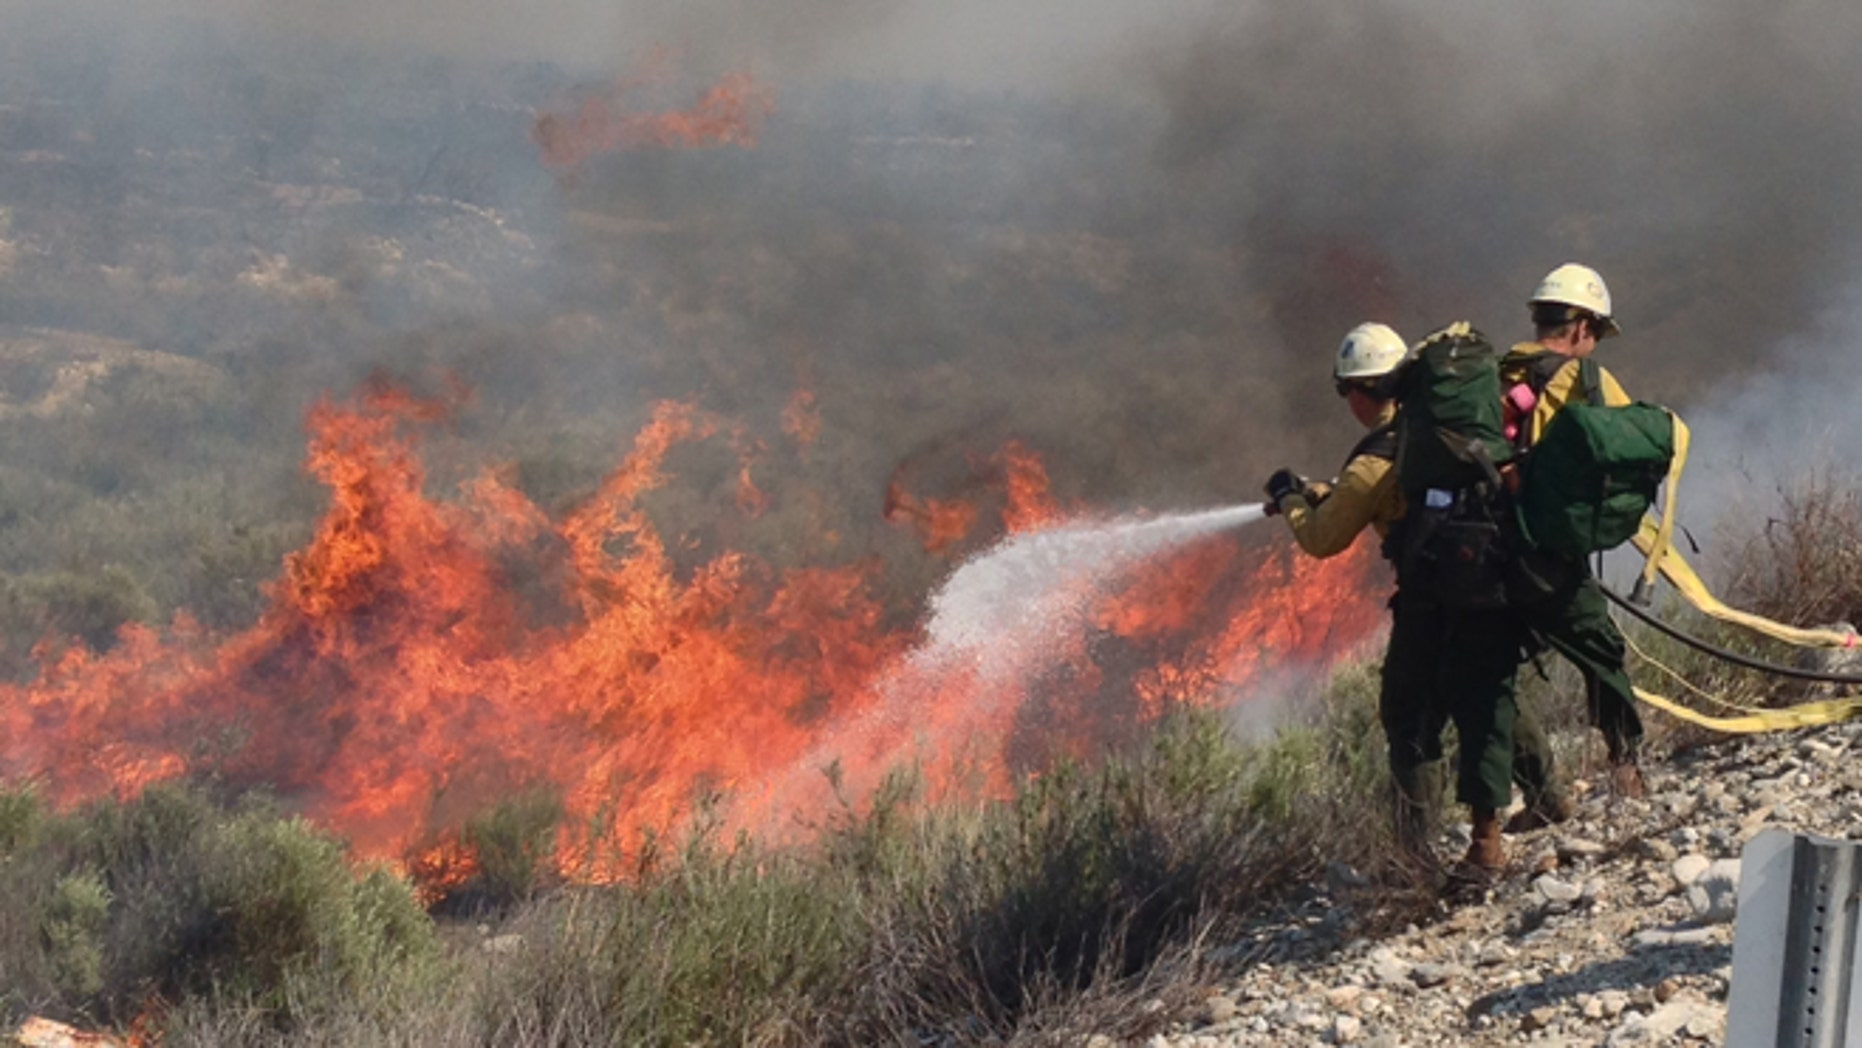 Apr. 30, 2014: Firefighters battle wildfire in Southern California.